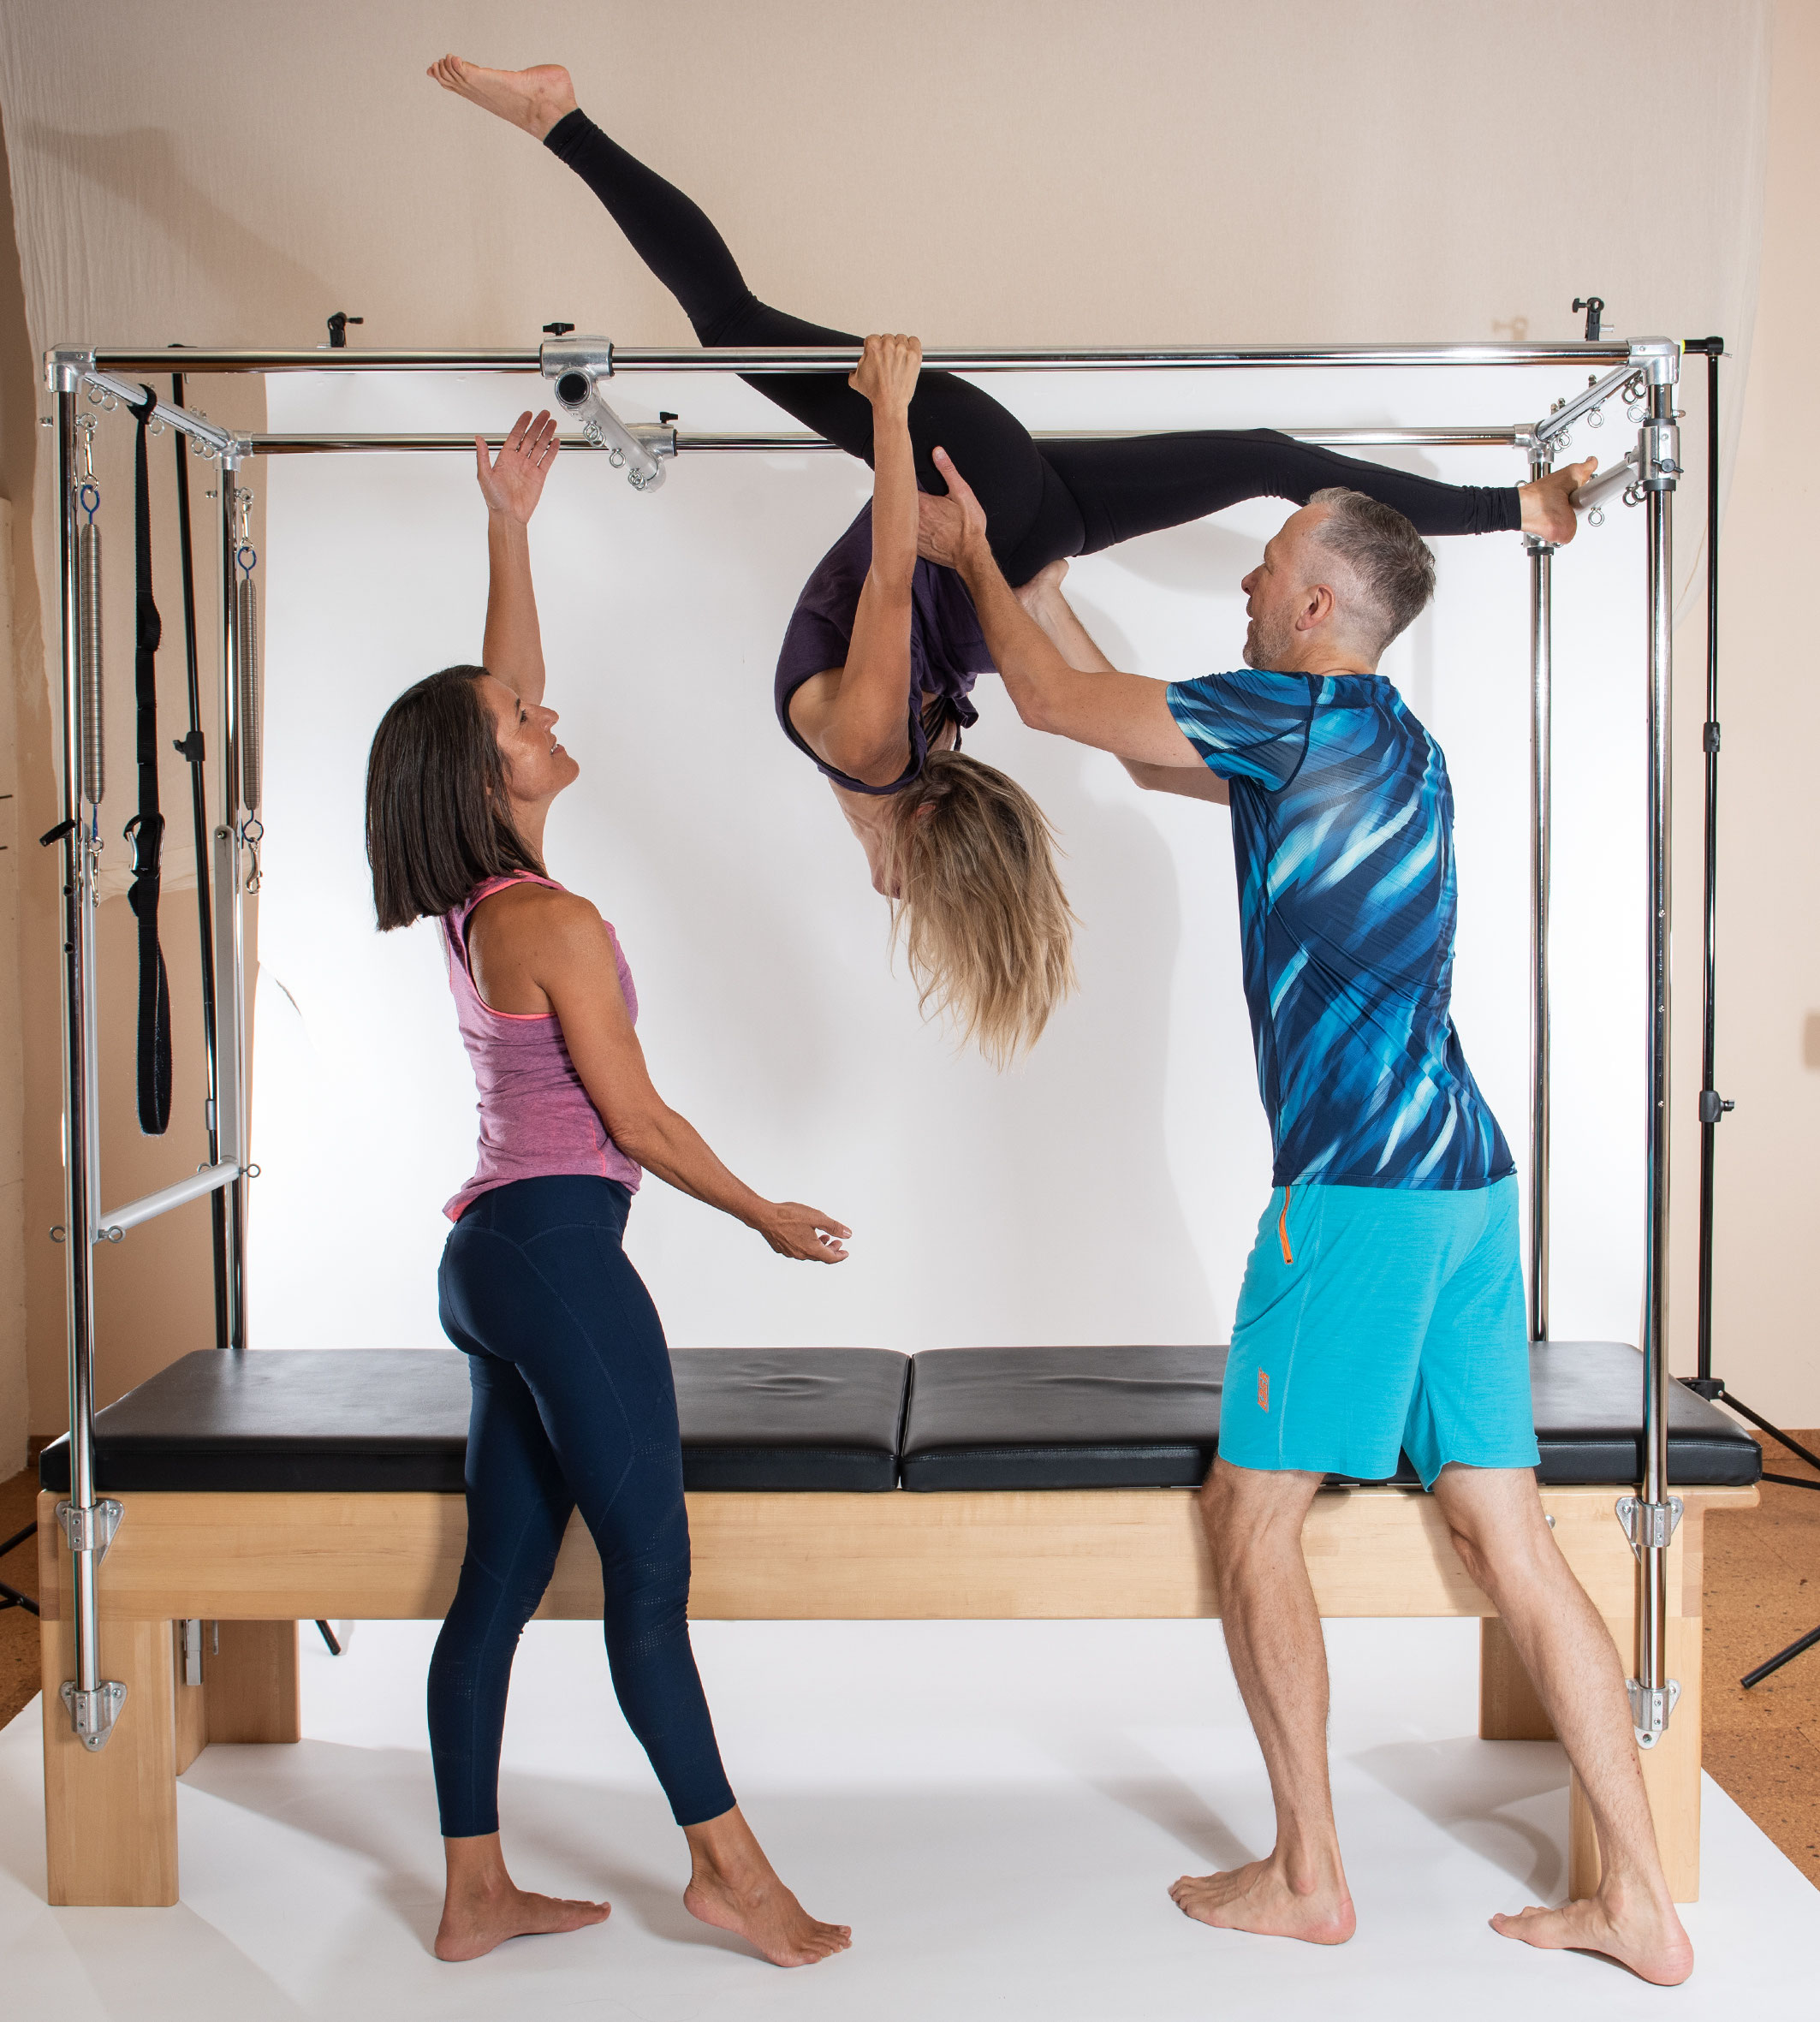 aufbaumodul tower cadillac ausbildung 2019 pilates. Black Bedroom Furniture Sets. Home Design Ideas